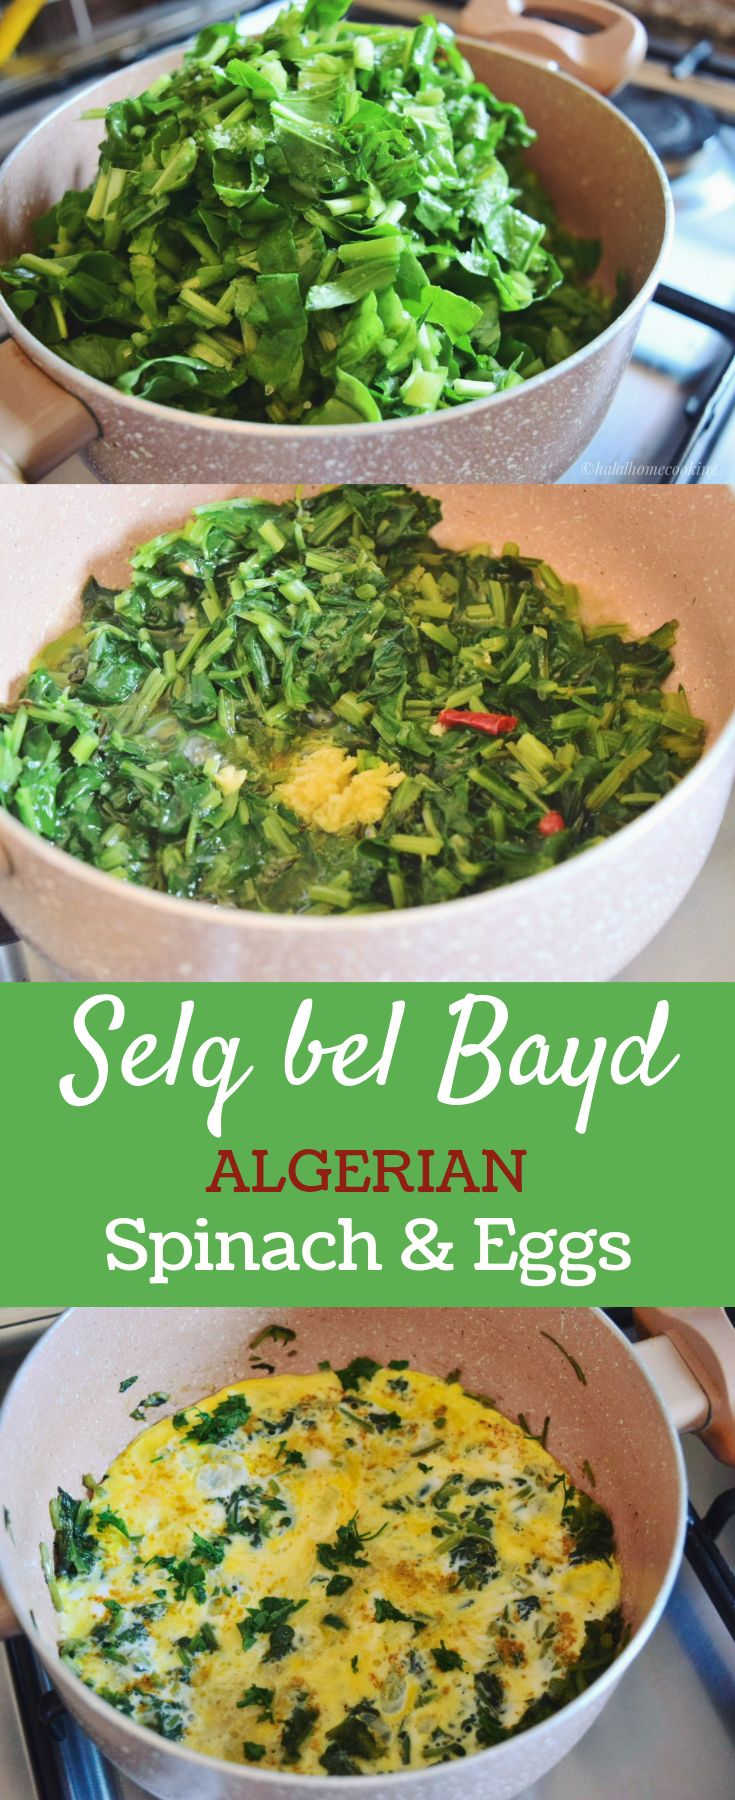 The 25 best algerian recipes ideas on pinterest algerian food selq bel bayd spinach with eggs an algerian side dish forumfinder Images